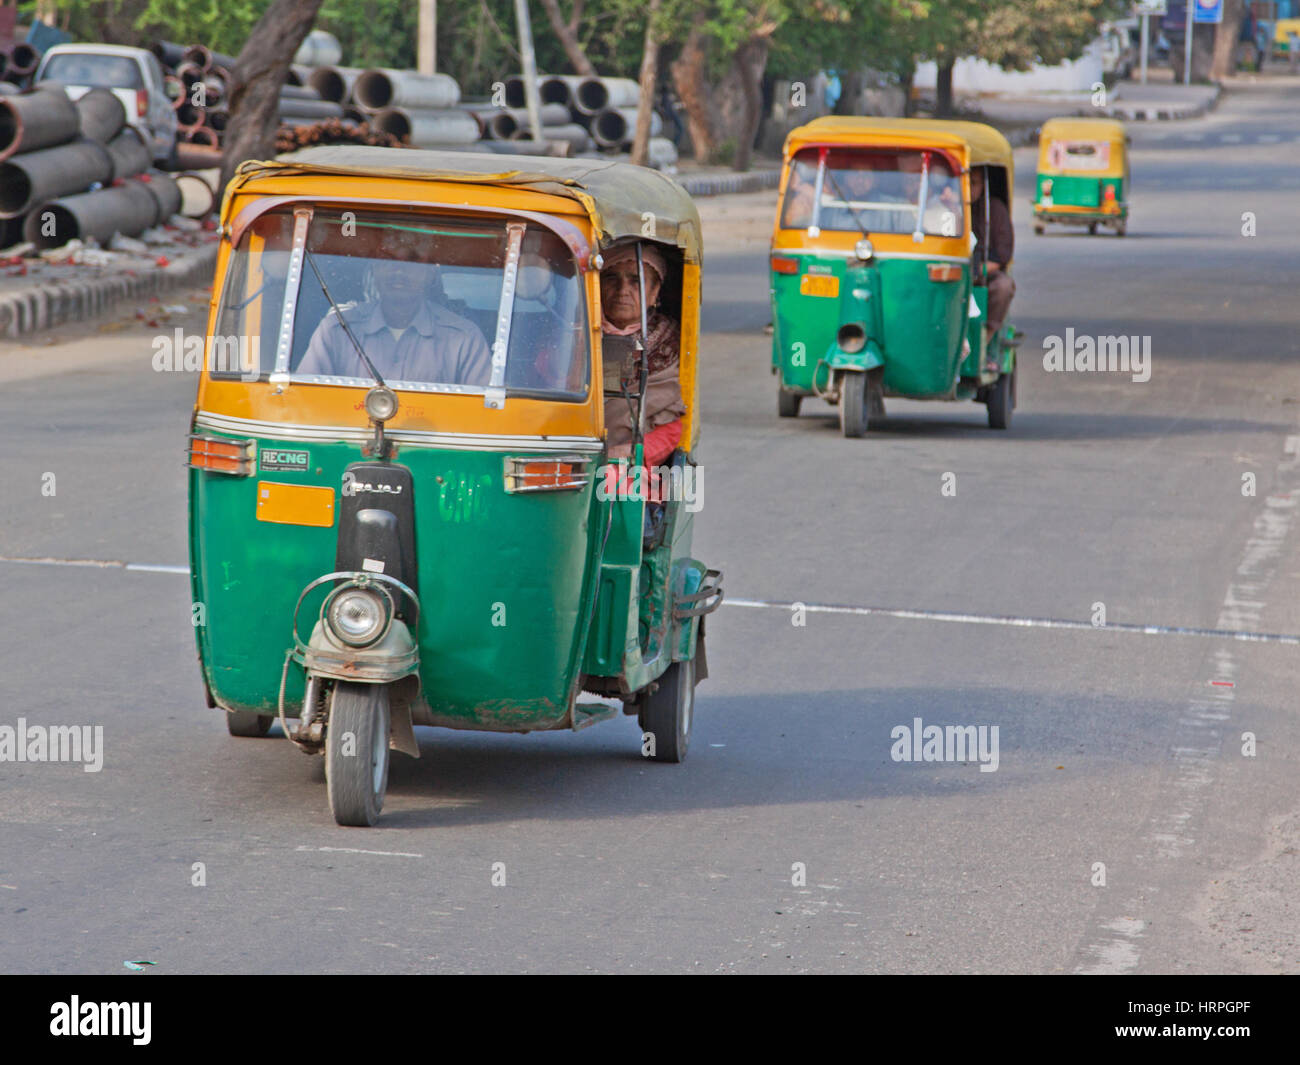 4550 Miles From Delhi >> Indian Tuk Tuk Stock Photos & Indian Tuk Tuk Stock Images - Alamy